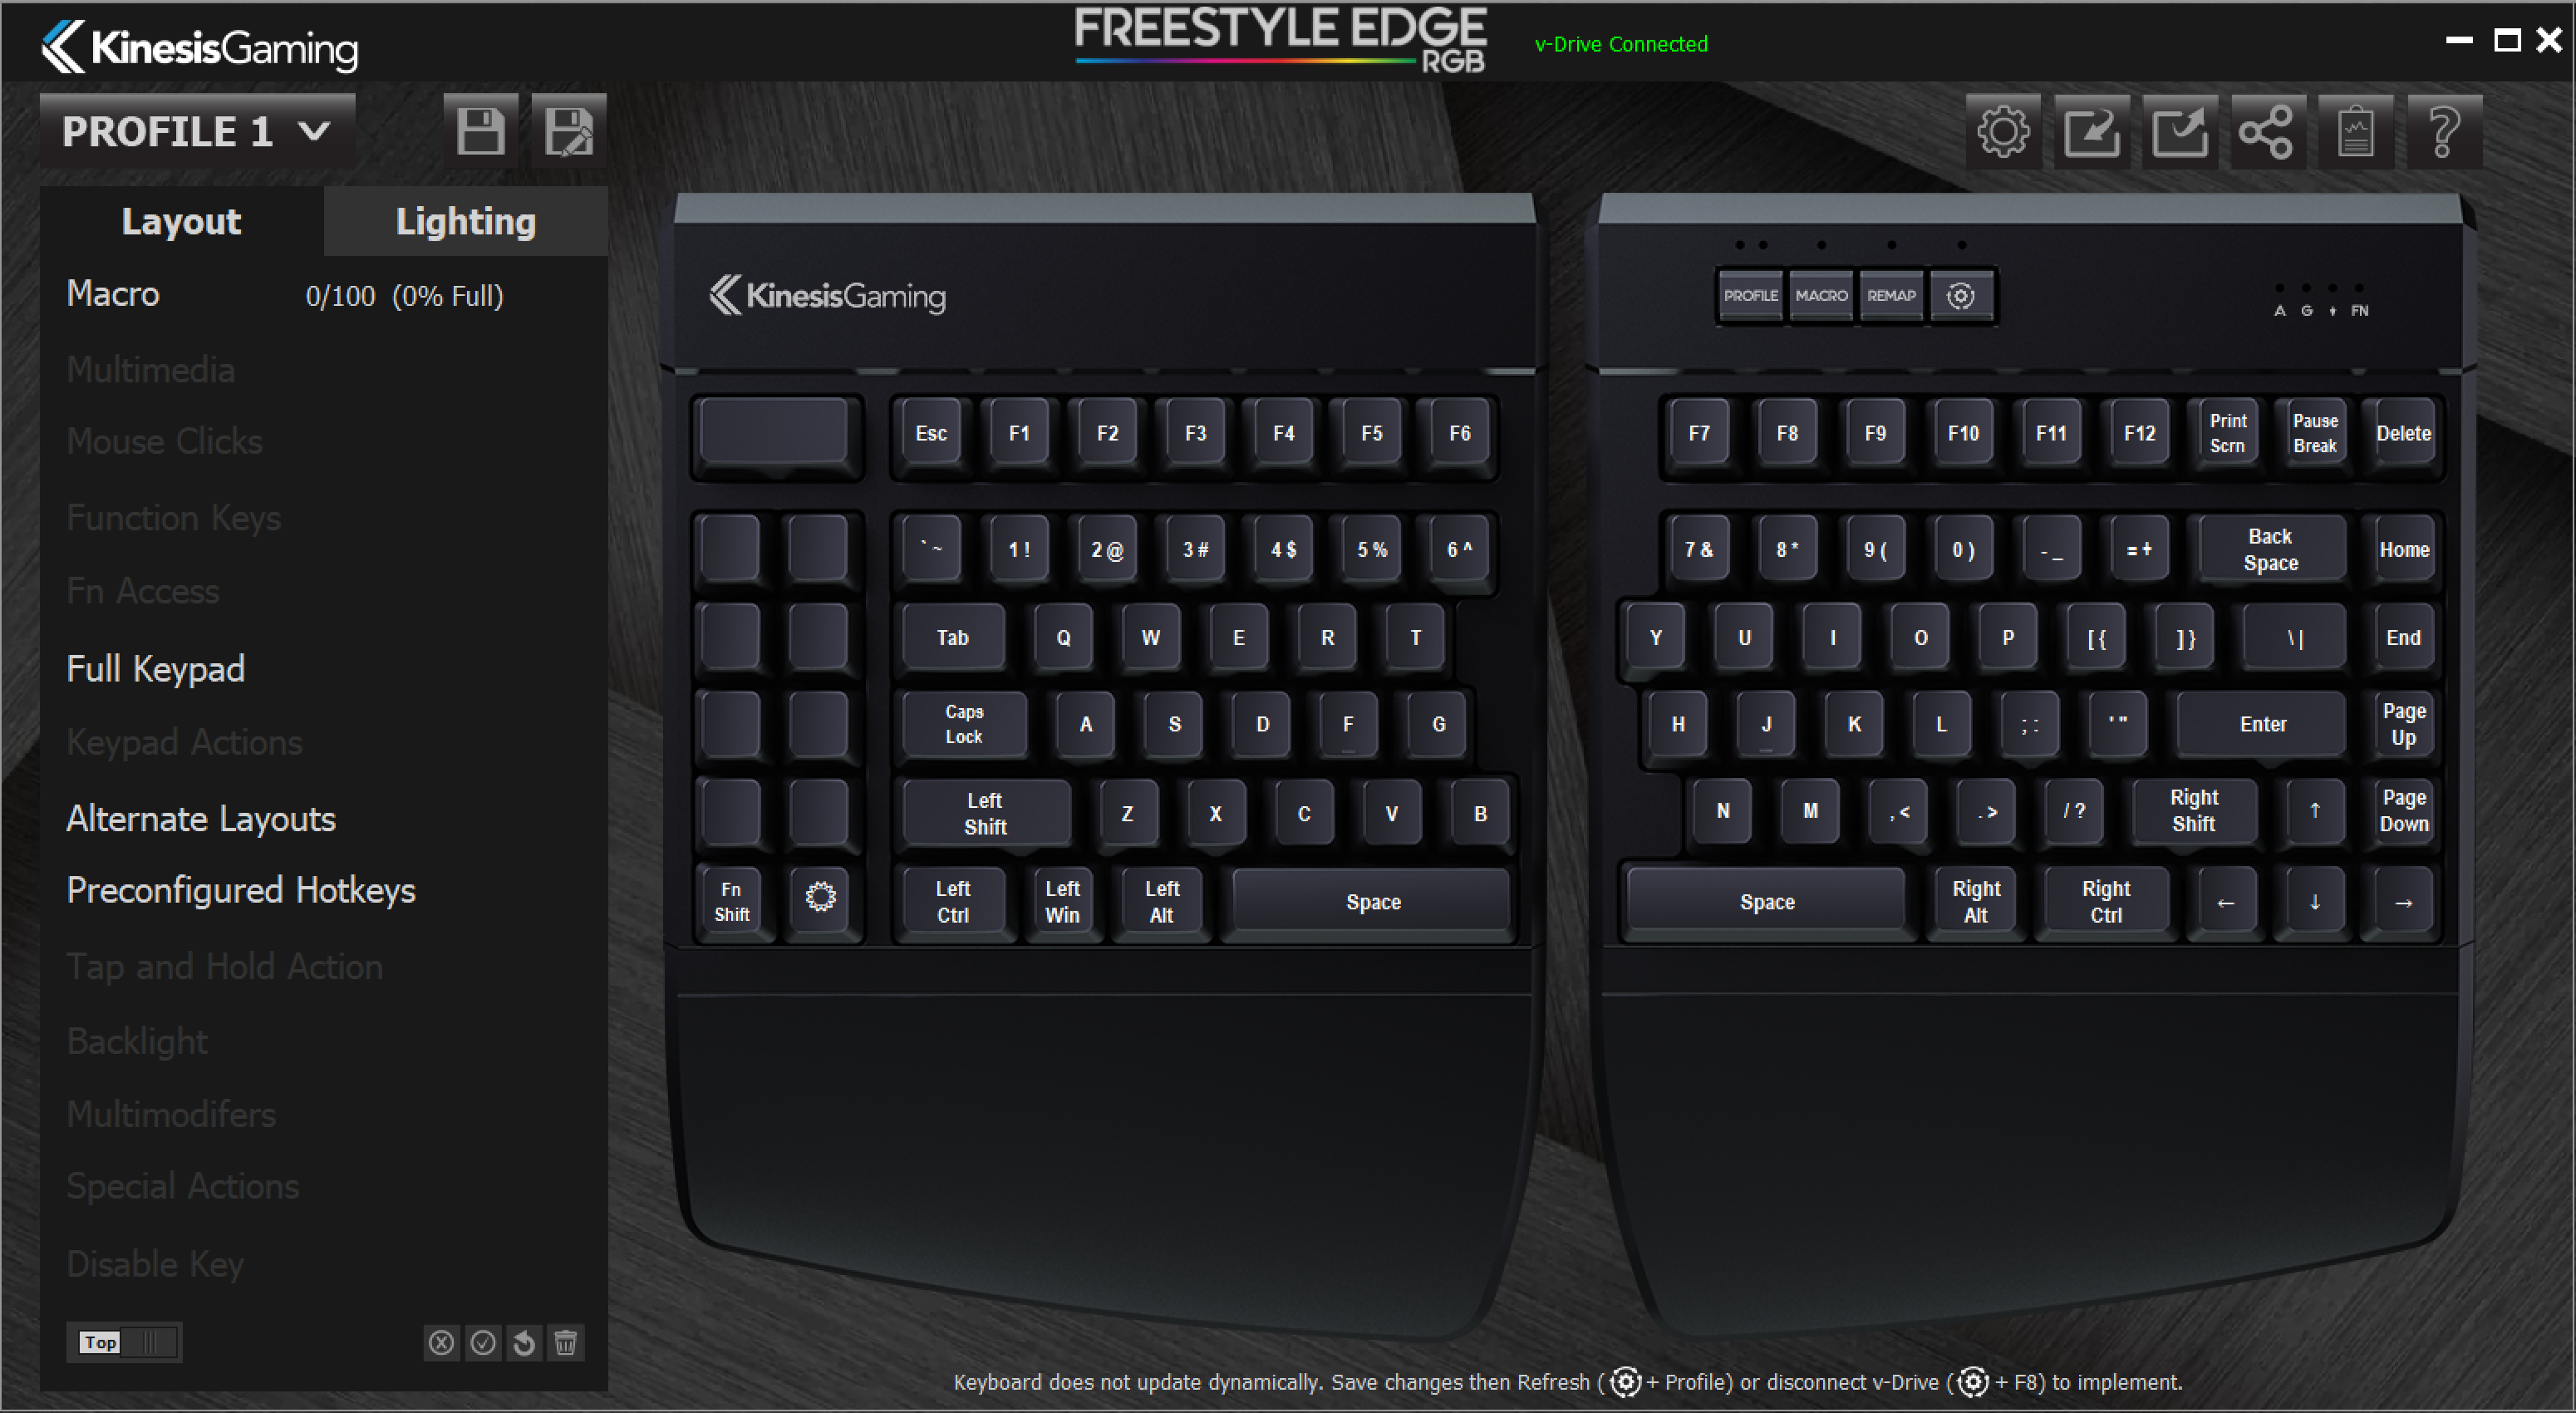 Software - The Kinesis Freestyle Edge RGB Gaming Mechanical